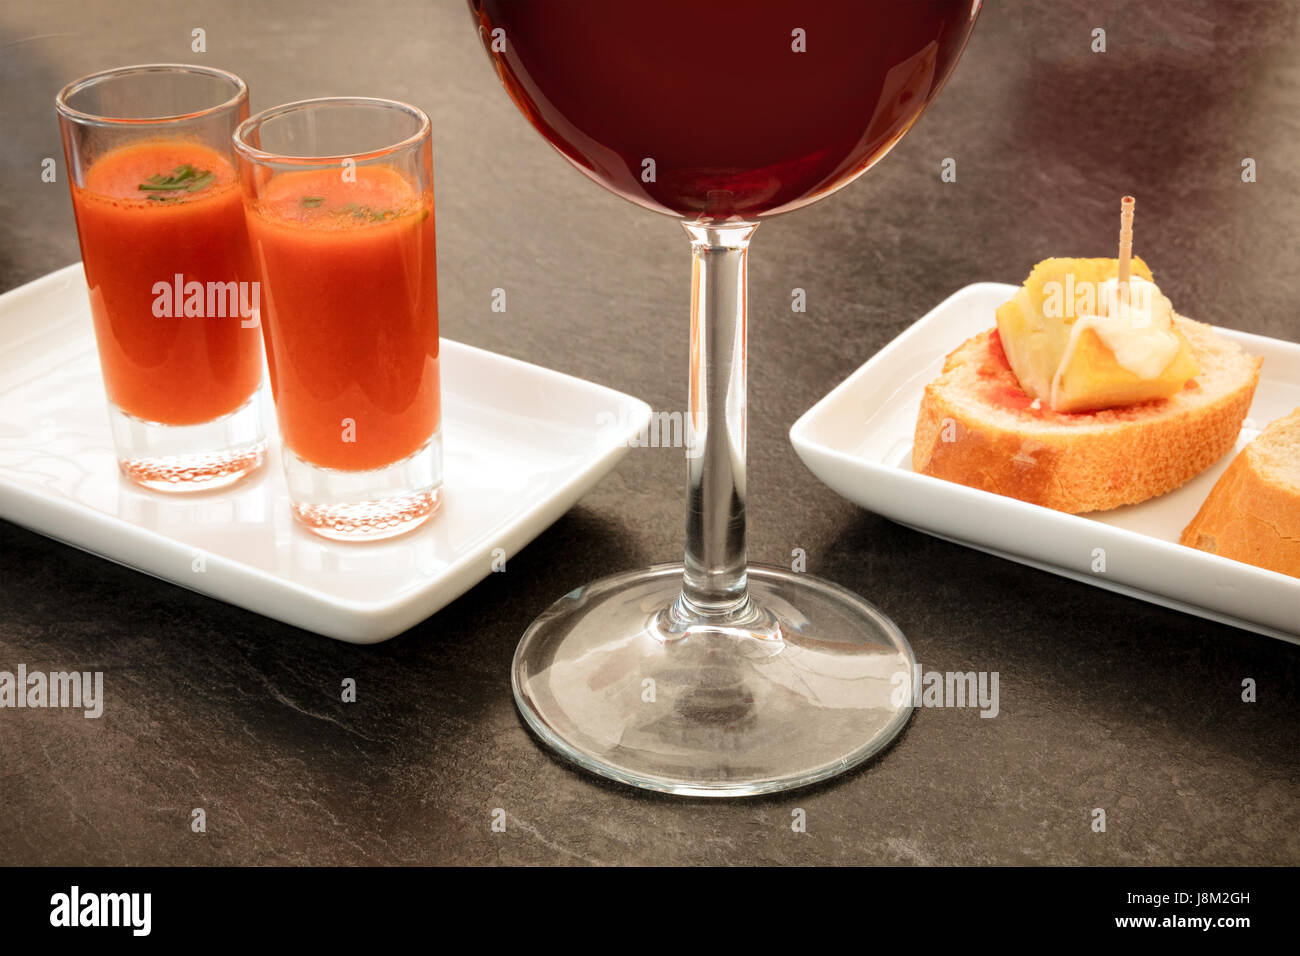 Spanish tapas in a modern bar. A glass of red wine, two shots of gazpacho, cold tomato soup, and pinchos of tortilla, - Stock Image